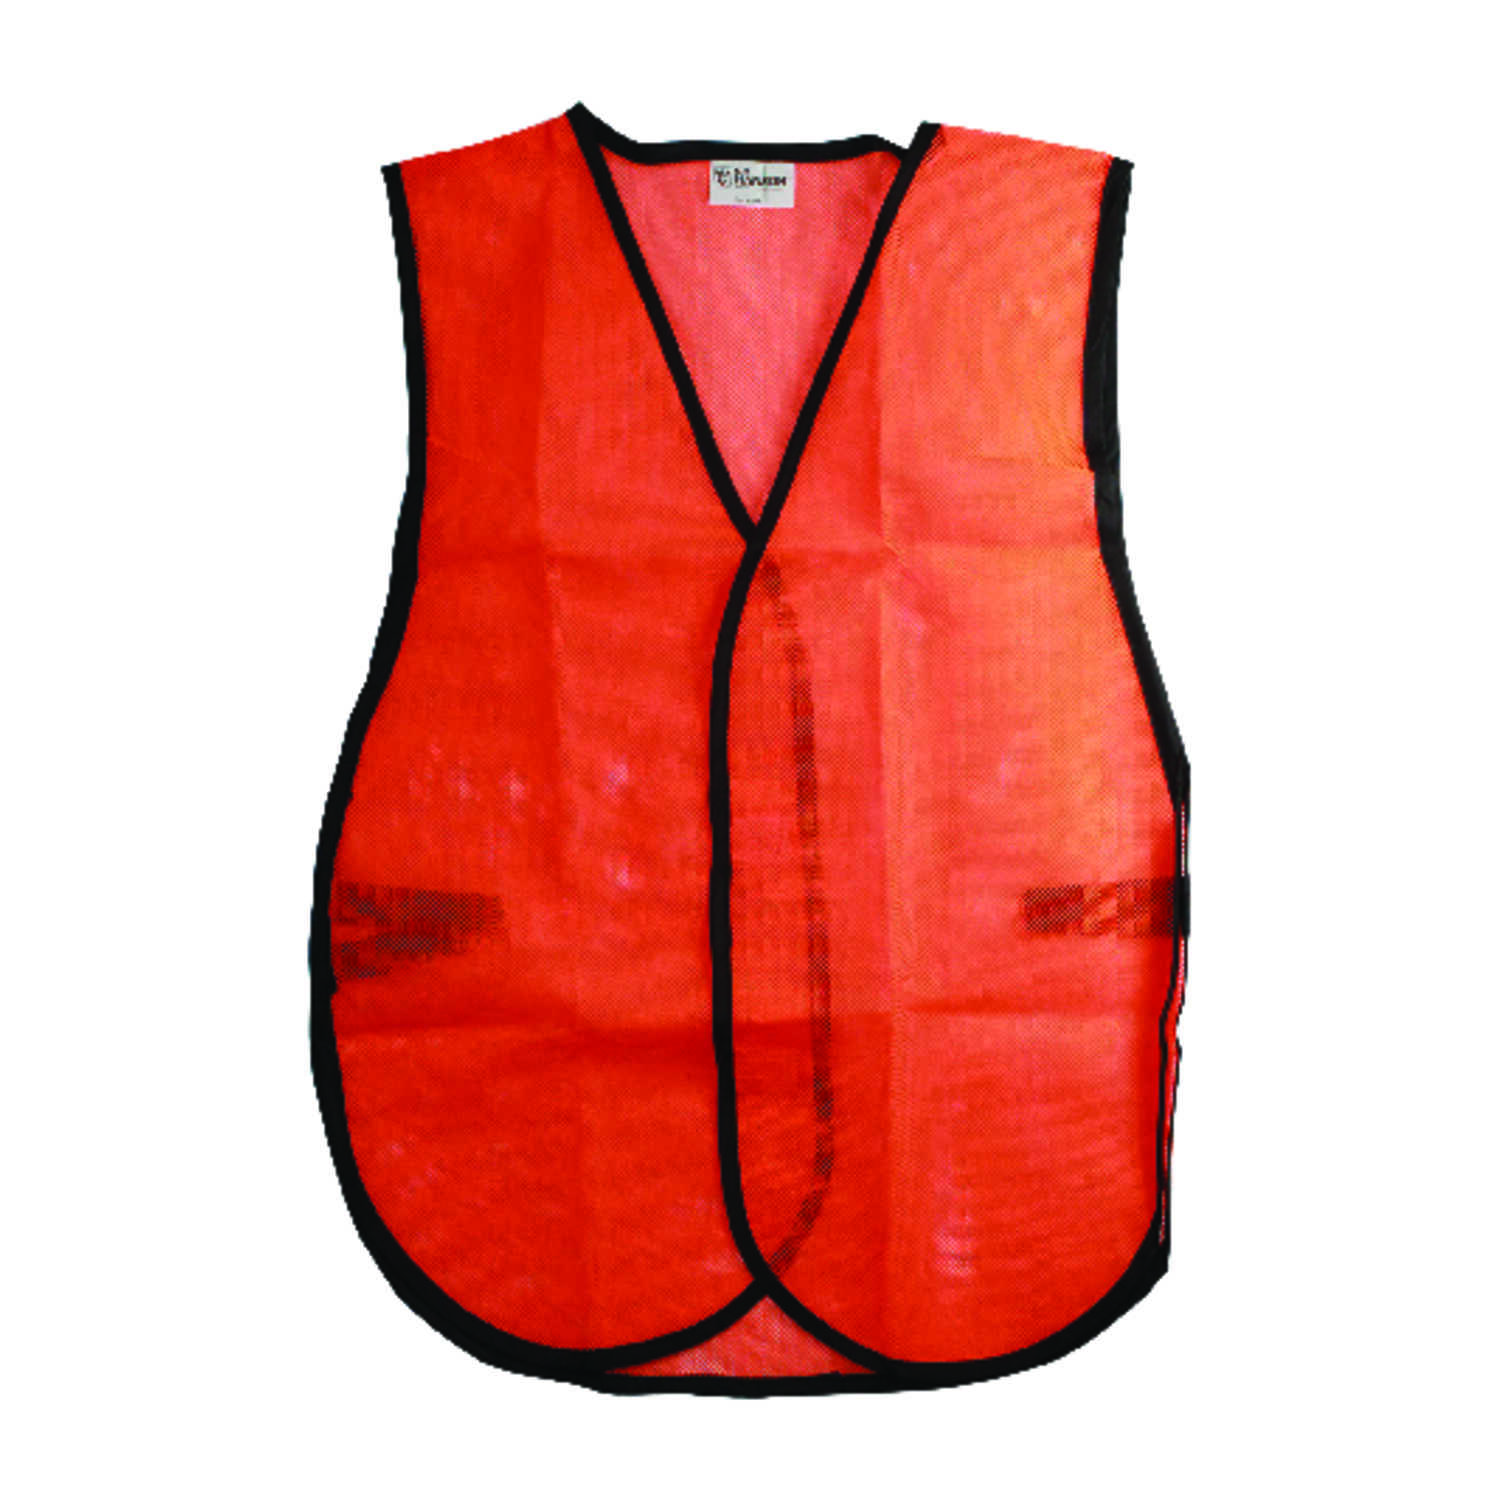 CH Hanson  Reflective Polyester Mesh  Safety Vest  Orange  One Size Fits All  1 pk